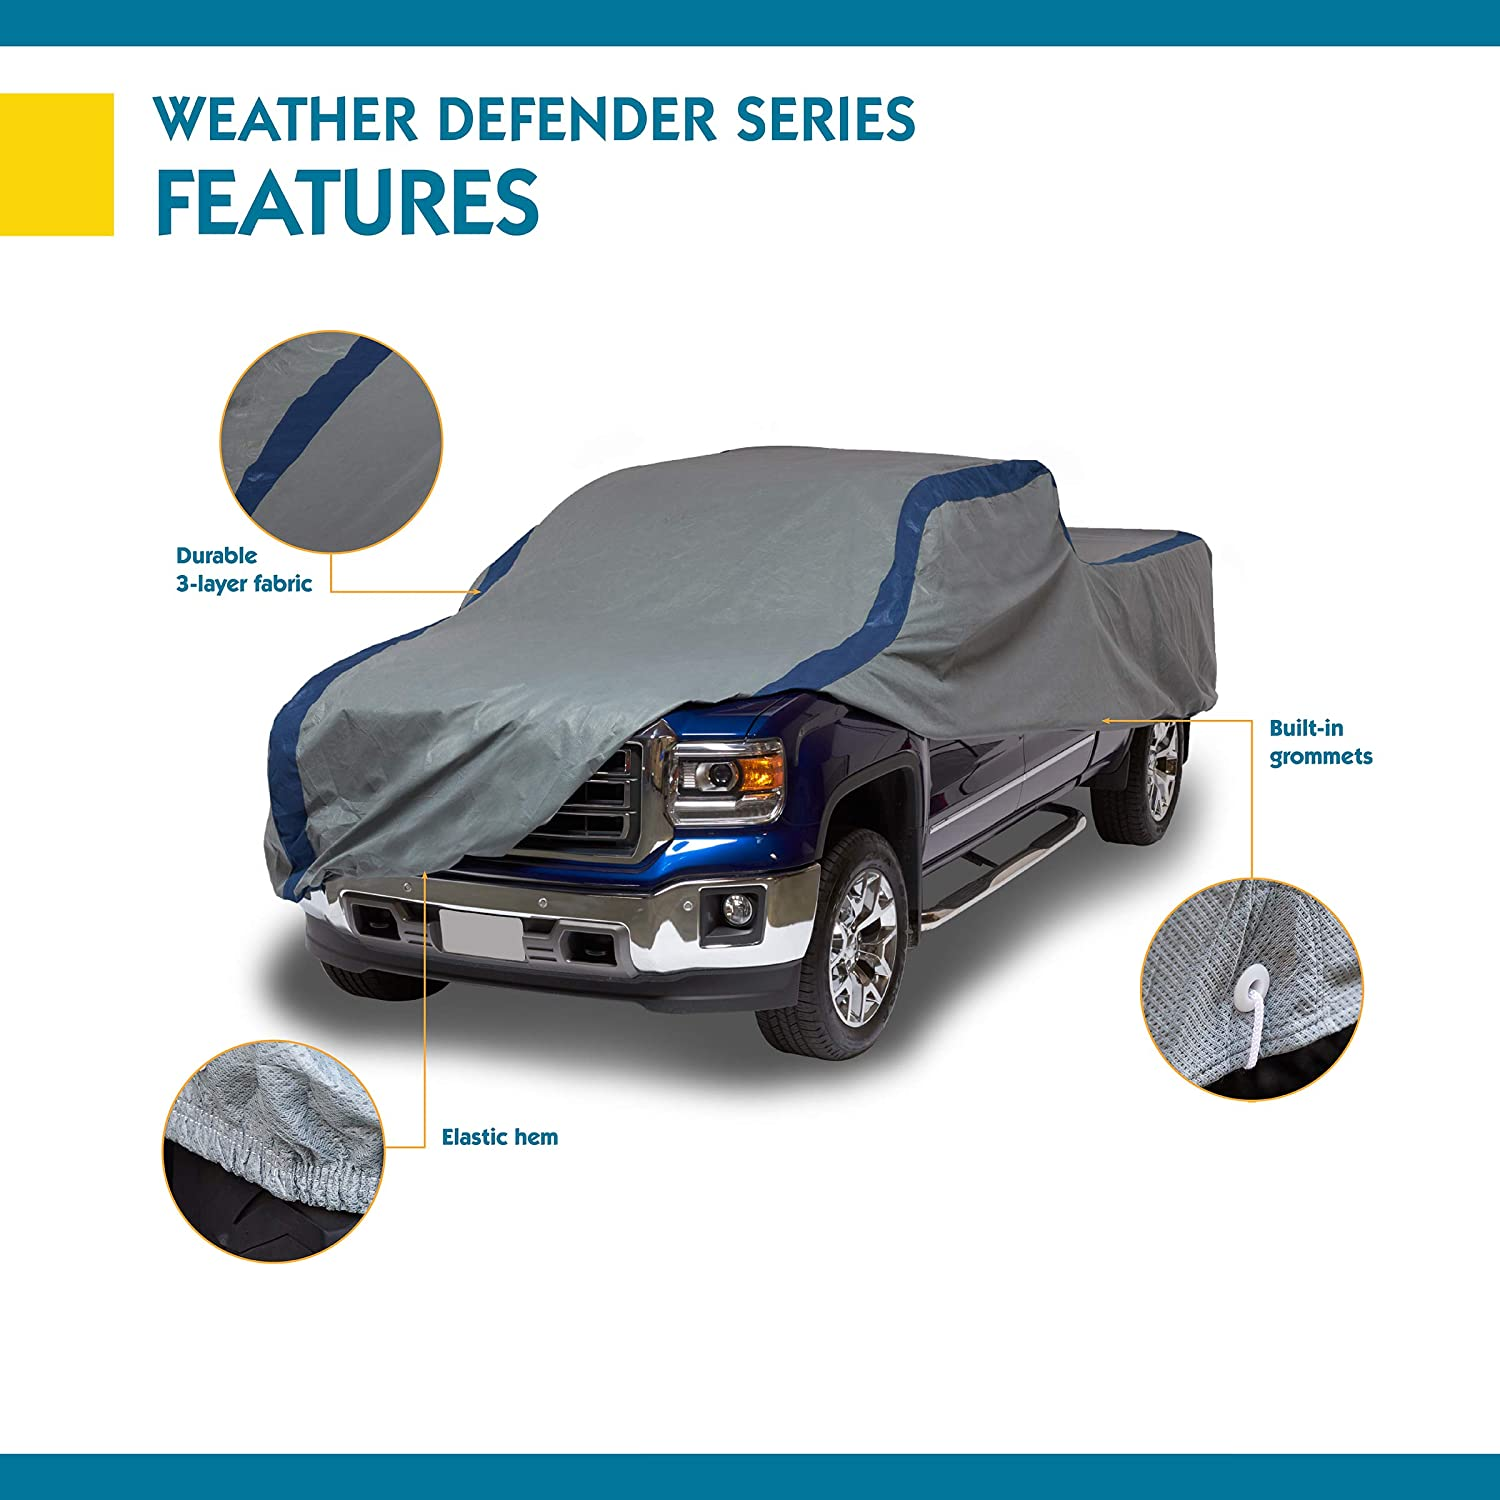 Duck Covers Weather Defender Pickup Truck Cover for Crew Cab Long Bed Dually Trucks up to 22